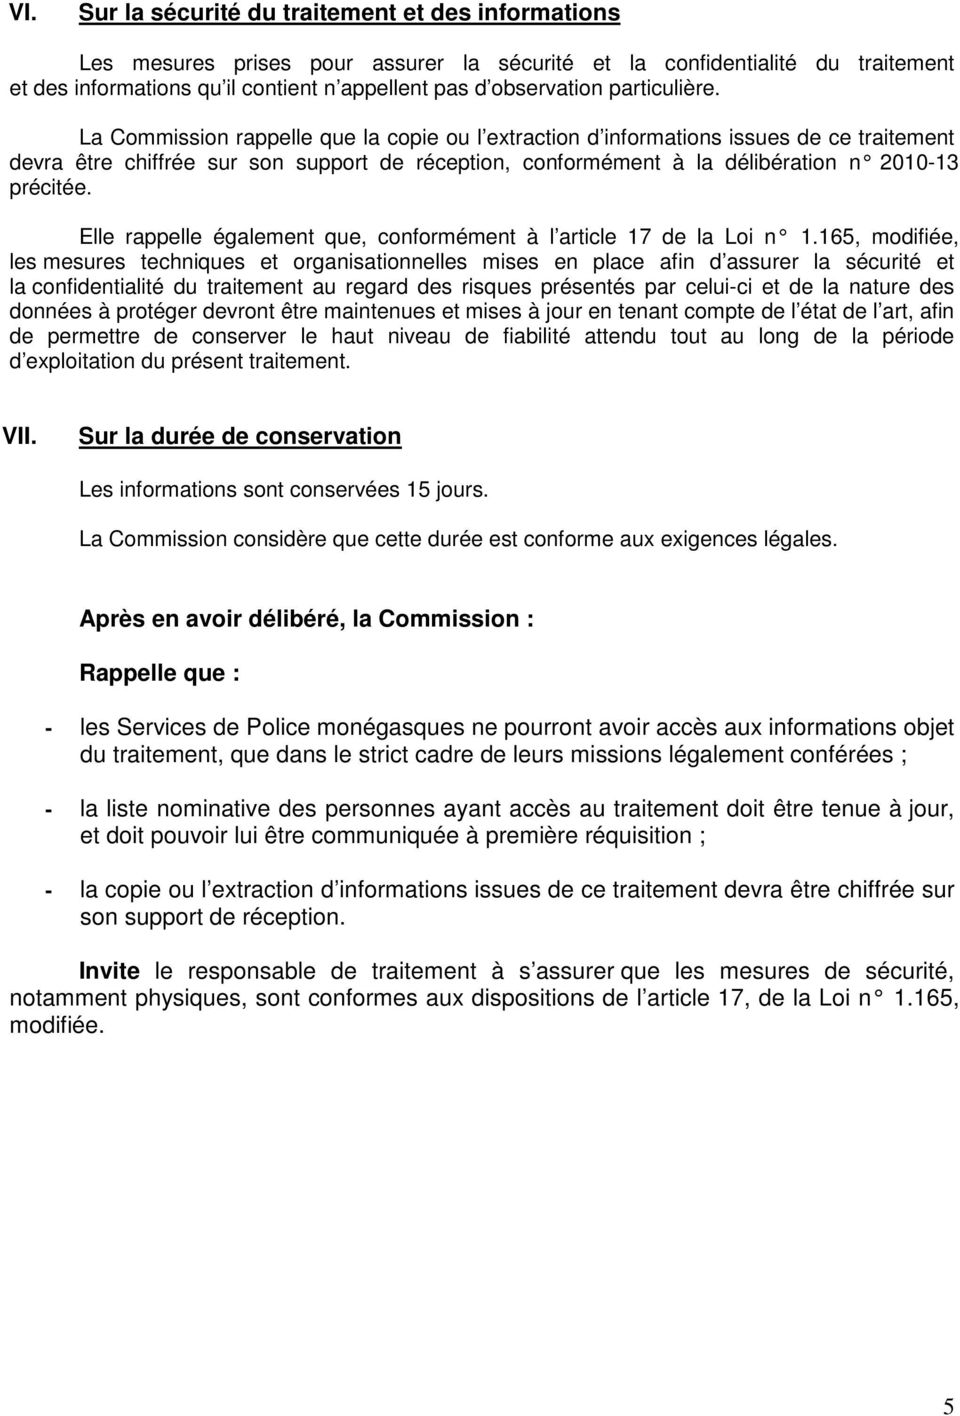 La Commission rappelle que la copie ou l extraction d informations issues de ce traitement devra être chiffrée sur son support de réception, conformément à la délibération n 2010-13 précitée.